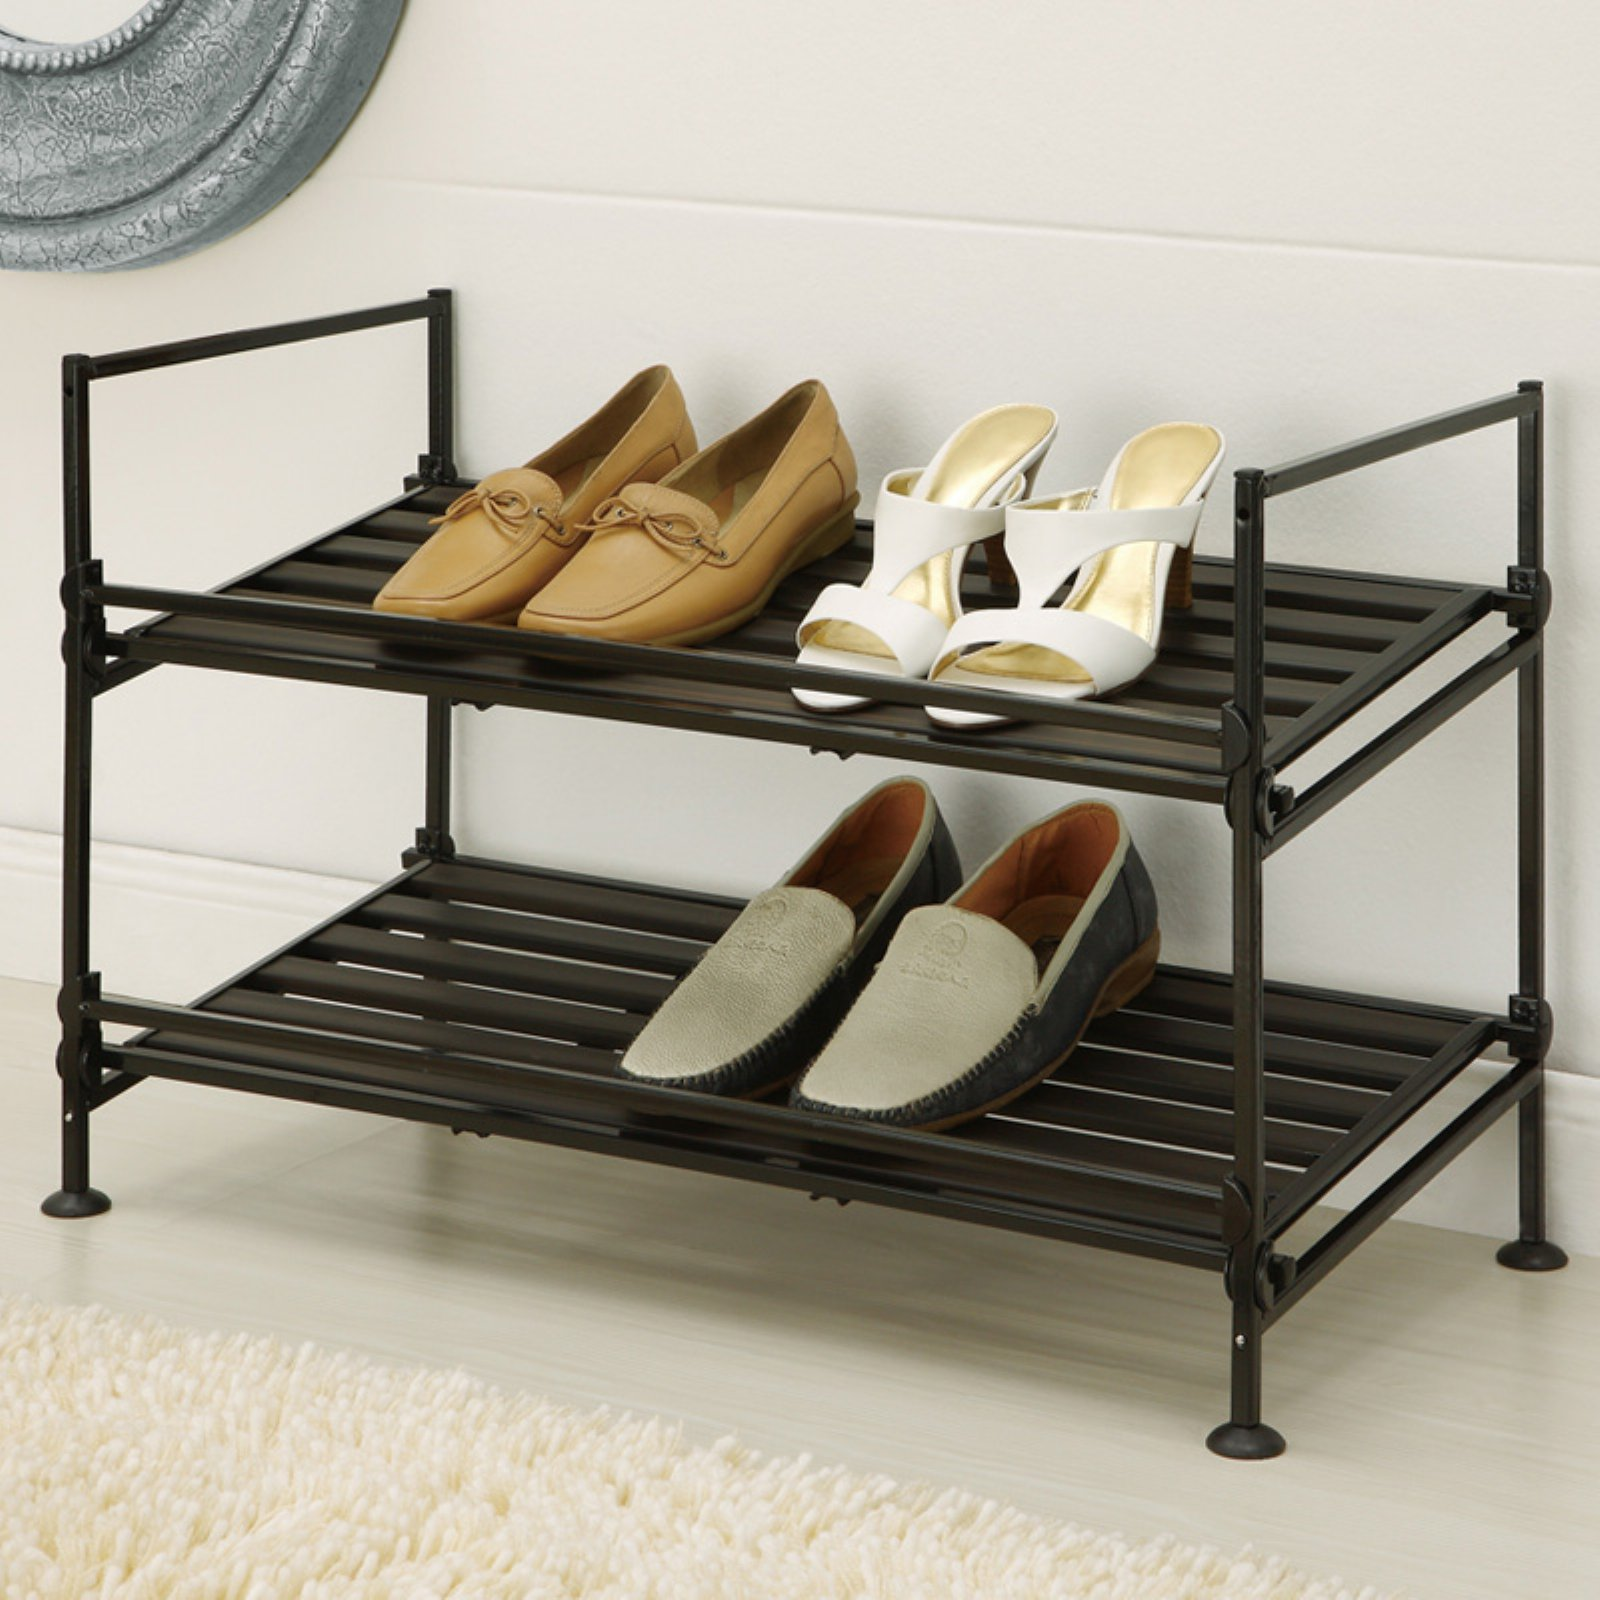 Ebonize 2 Tier Shoe Rack